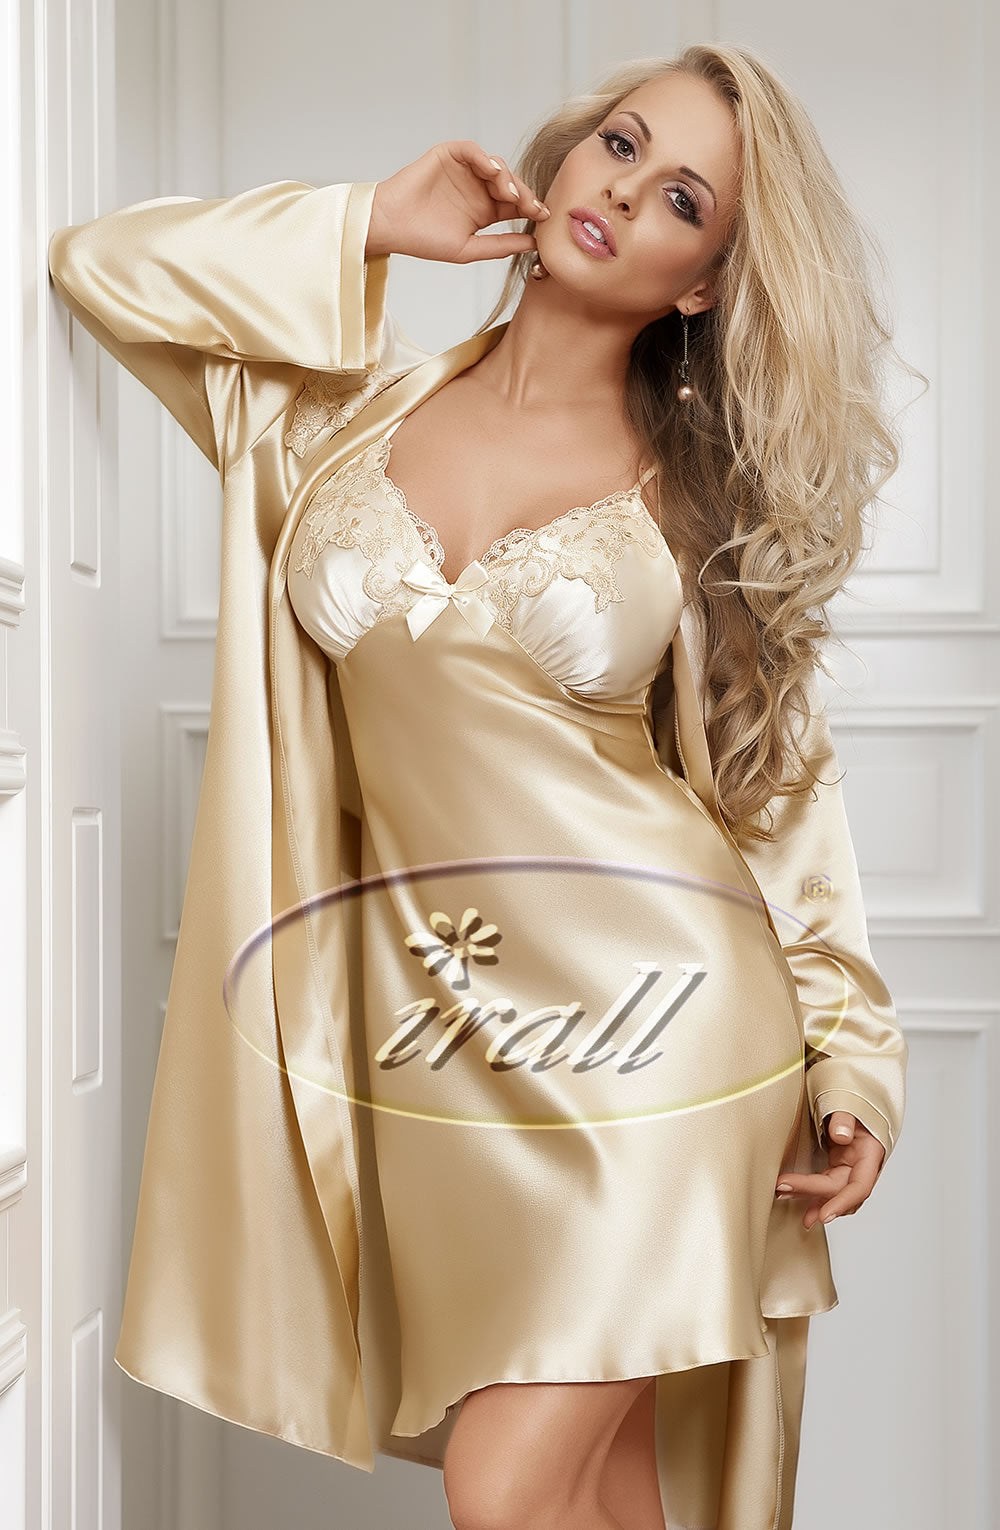 Irall Irall Parisa Dressing Gown Beige